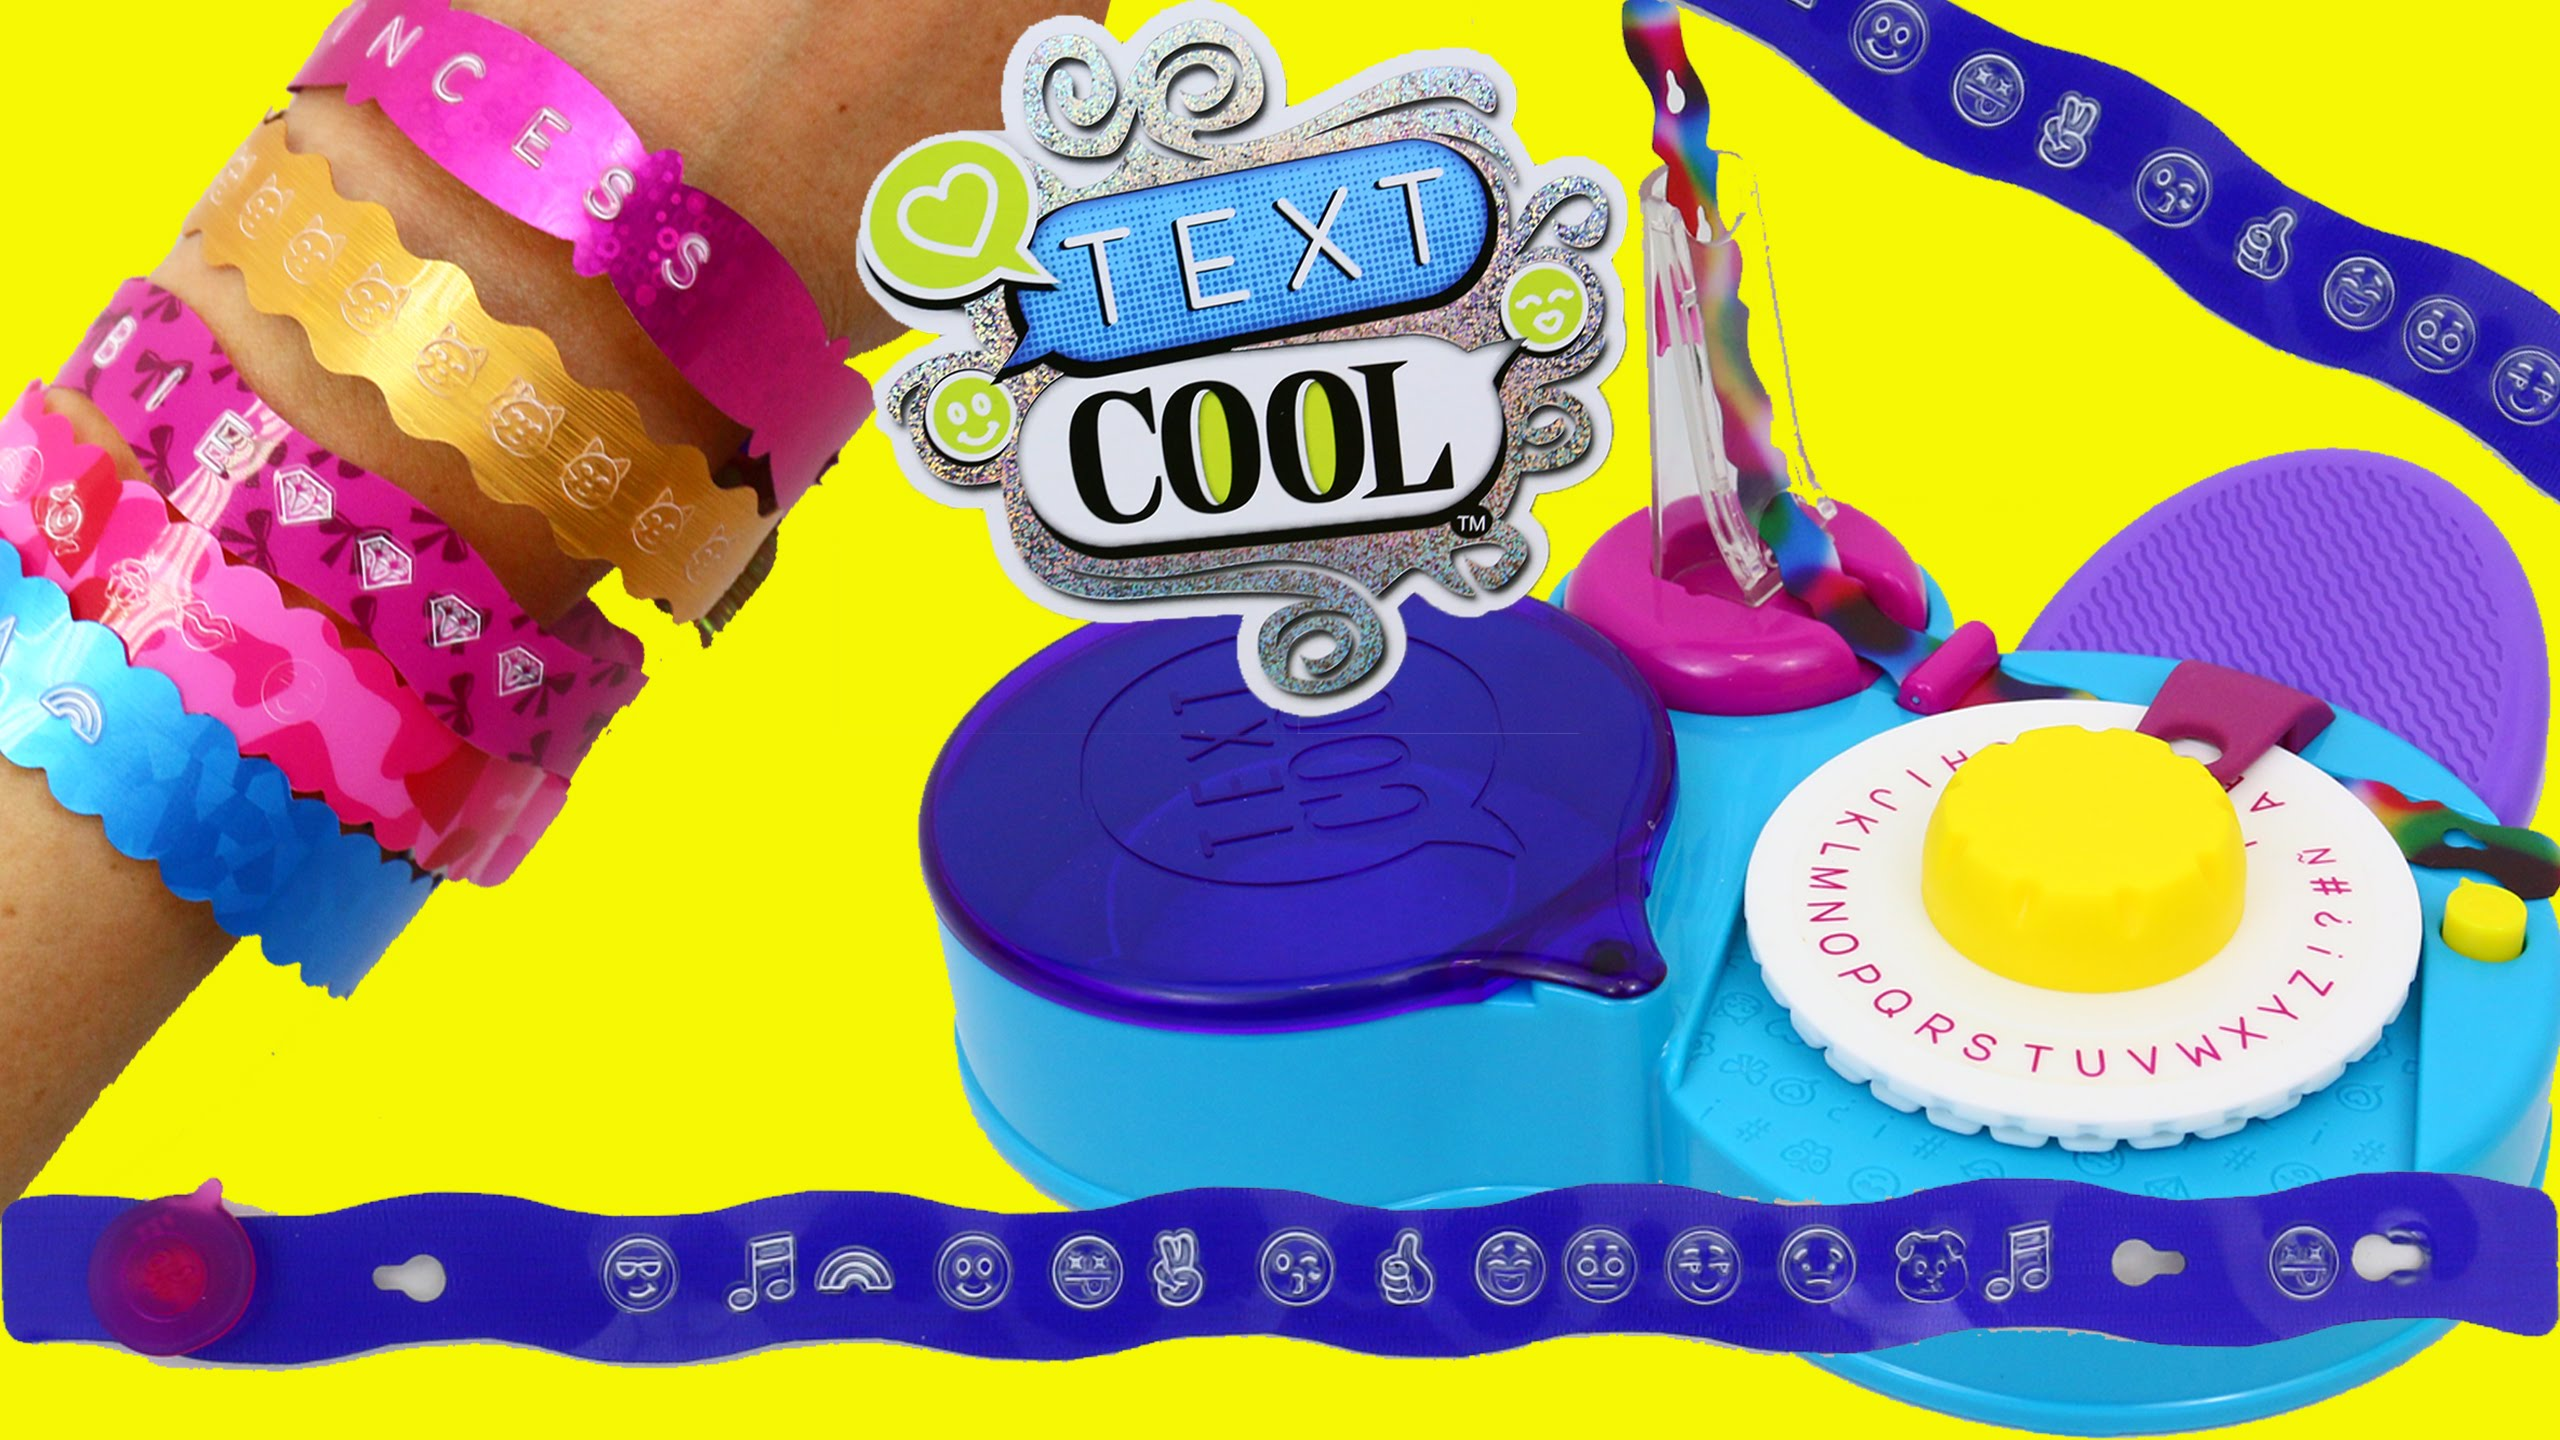 Text clipart creator clip freeuse stock Text Cool Bracelet Maker Jewelry Crafts & Fun Label Maker Toy ... clip freeuse stock